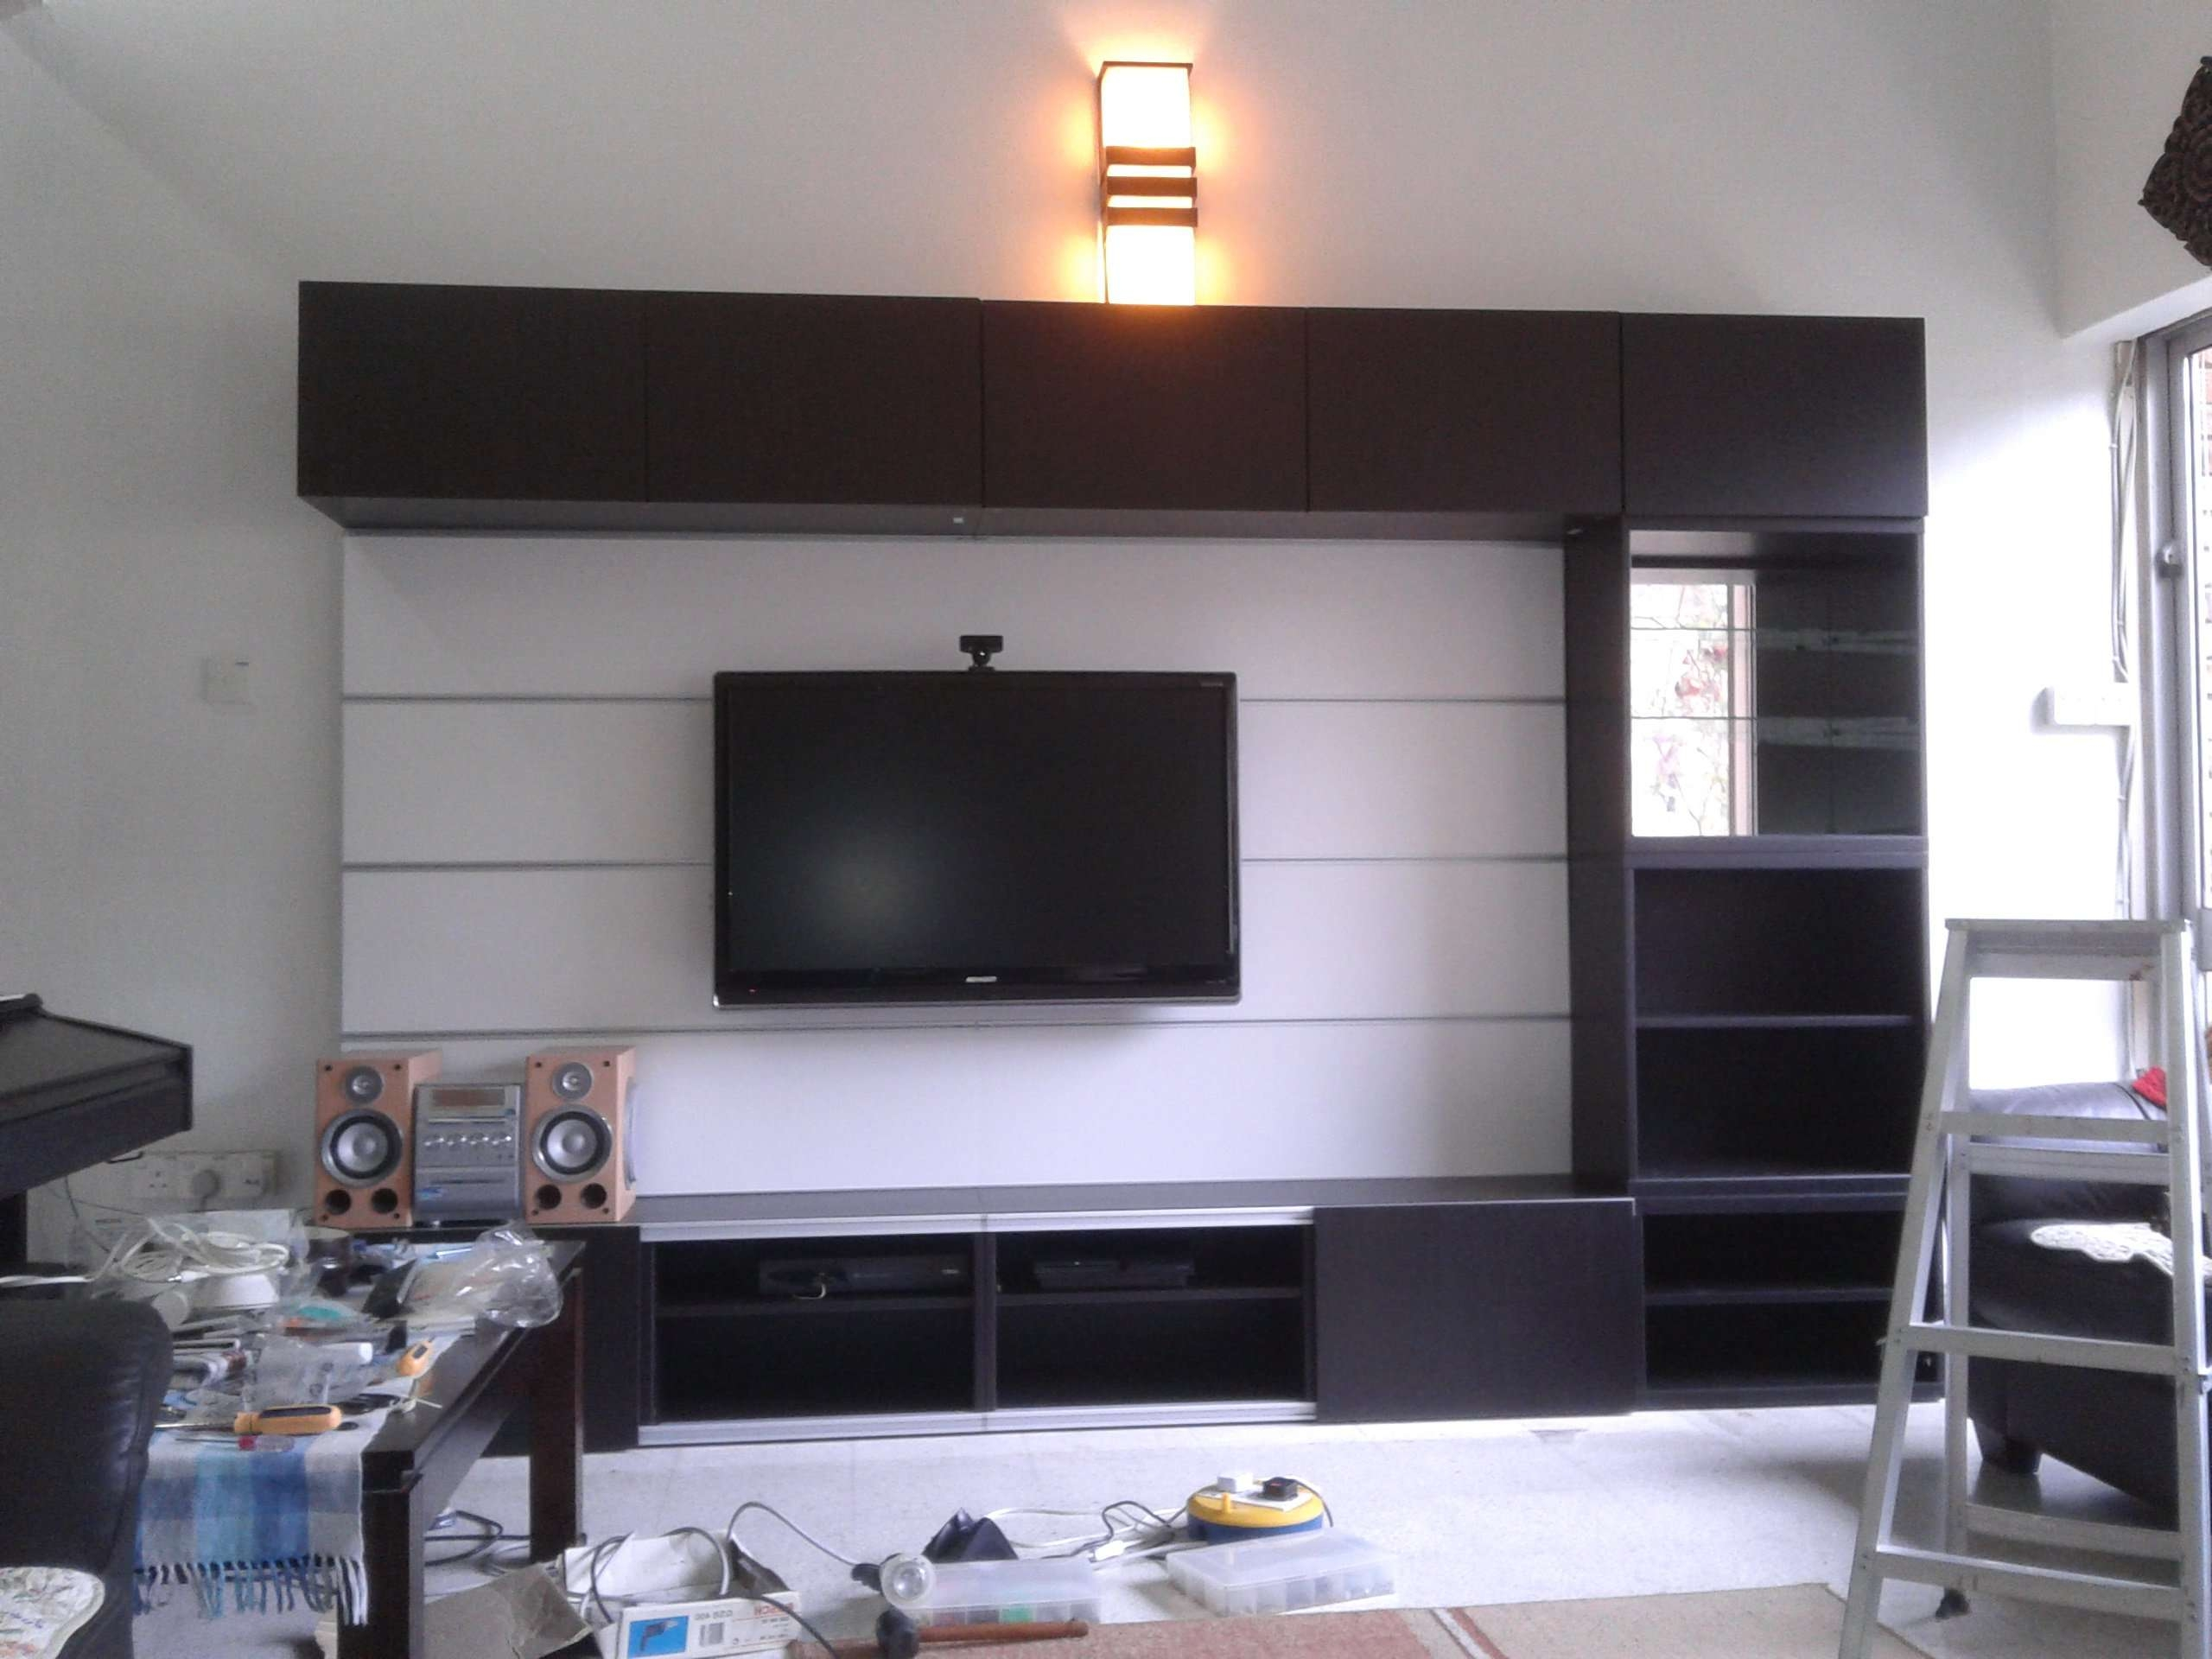 Ikea Besta Tv Stand With Black Wooden Cabinet And Selves Also Regarding Stylish Tv Cabinets (View 17 of 20)